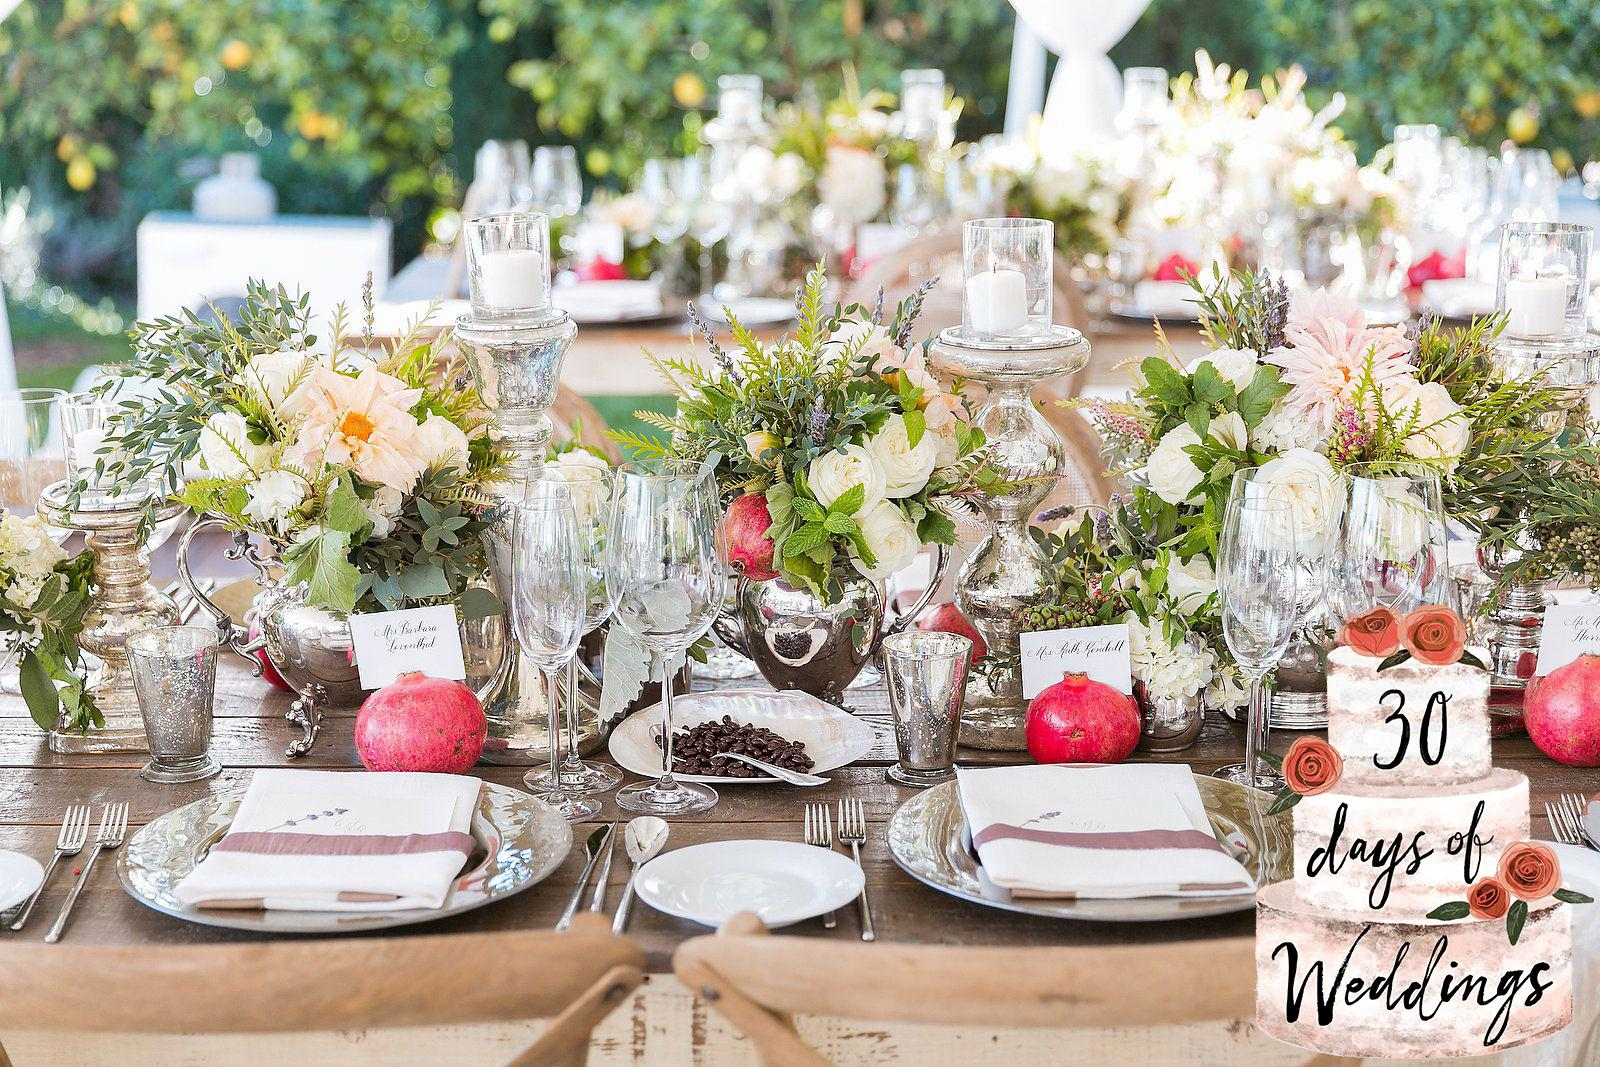 13 ways to make your wedding reception unique for Wedding table decorations ideas to make